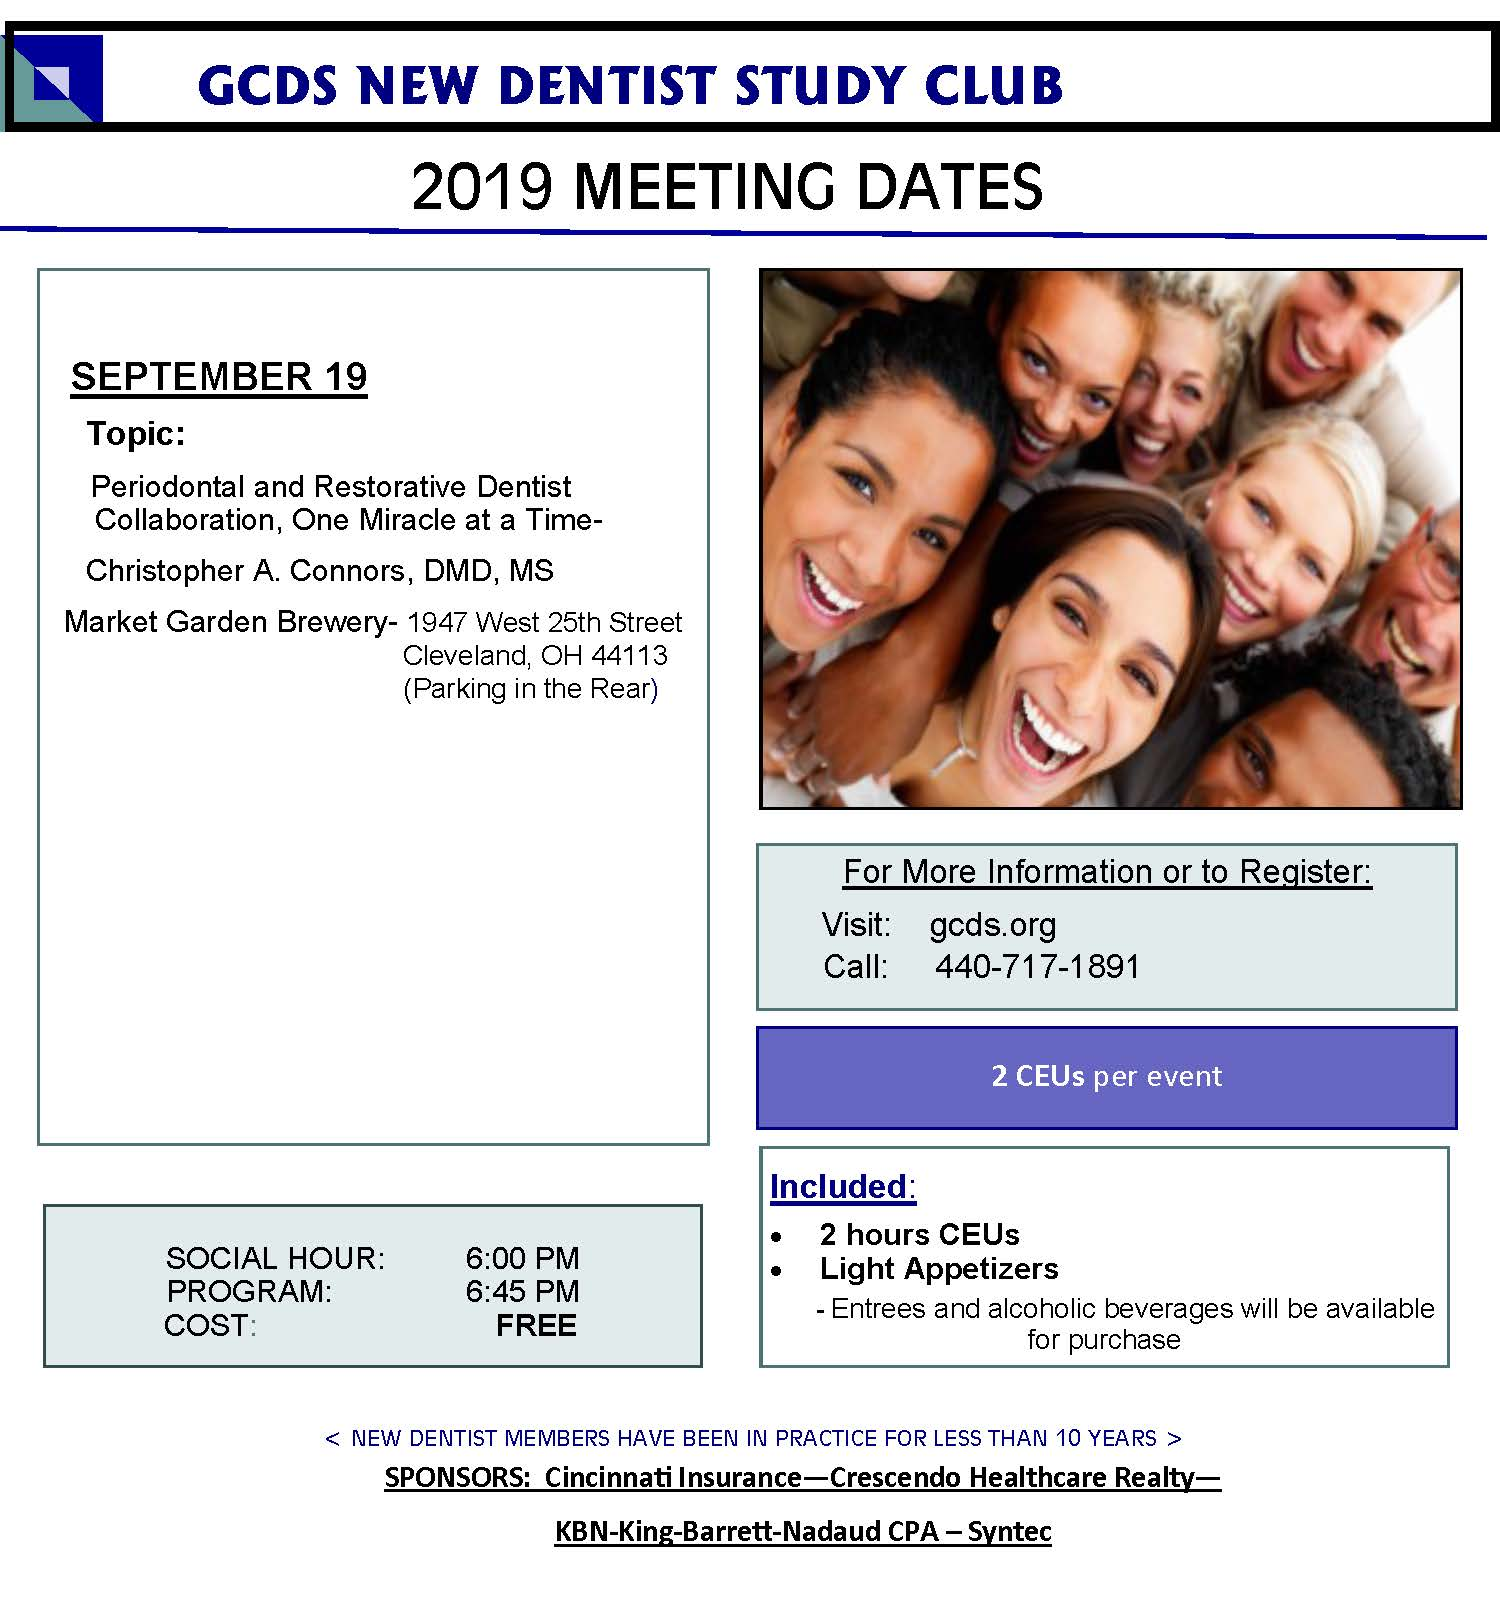 New Dentist Study Club